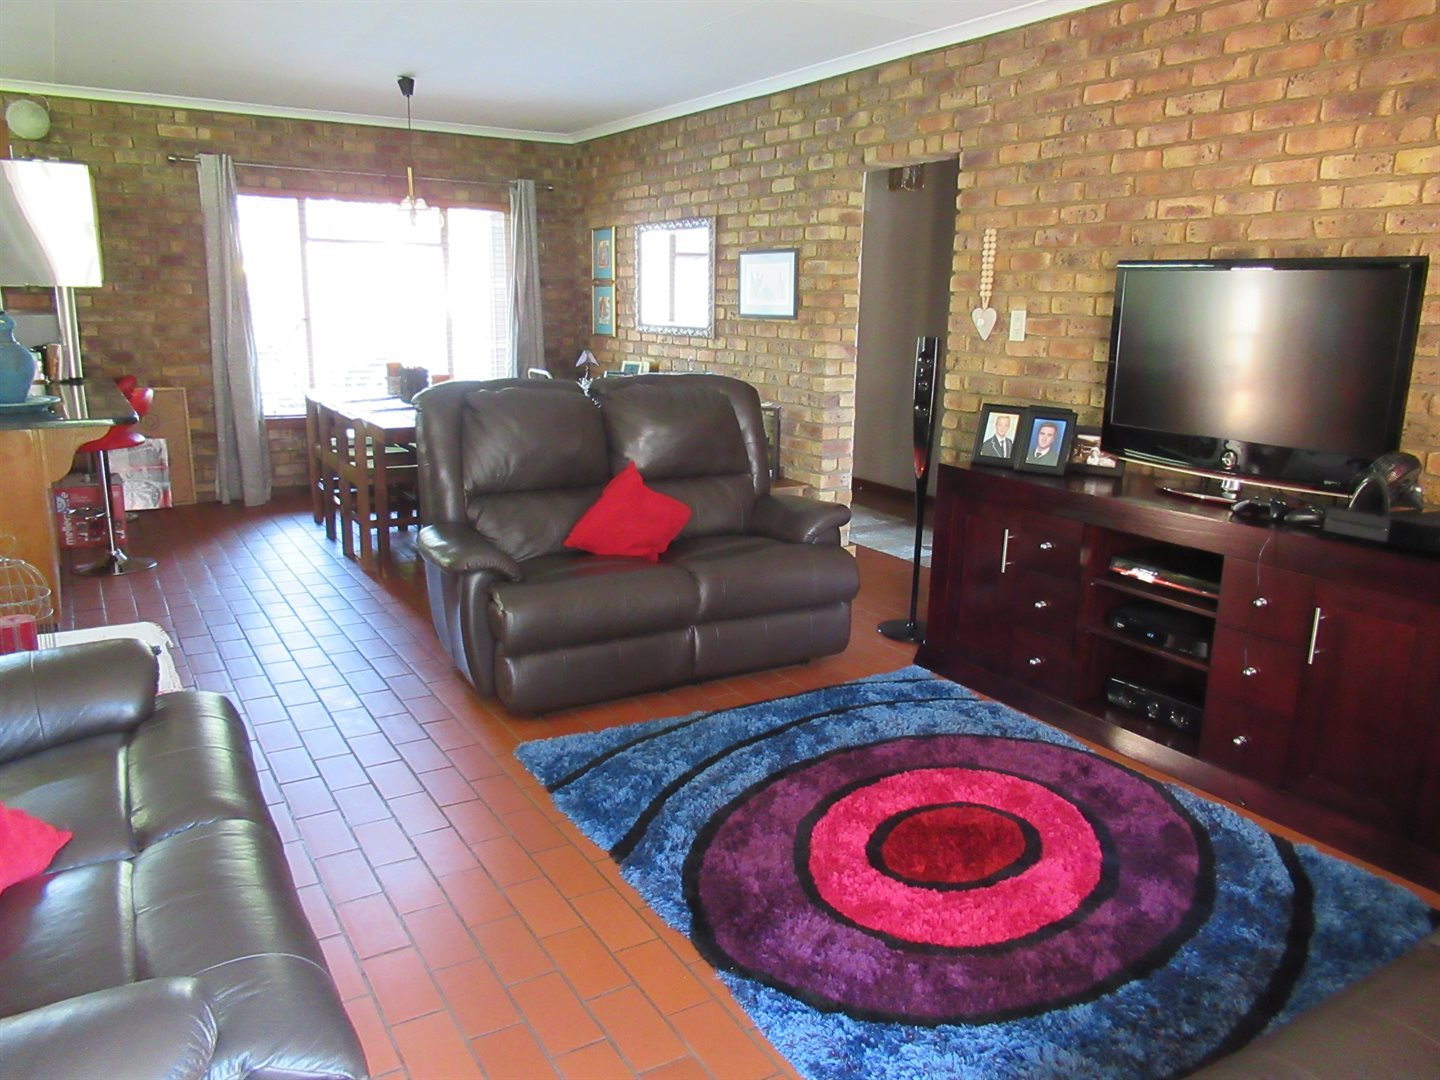 3 Bedroom House for sale in Montana ENT0070945 : photo#25